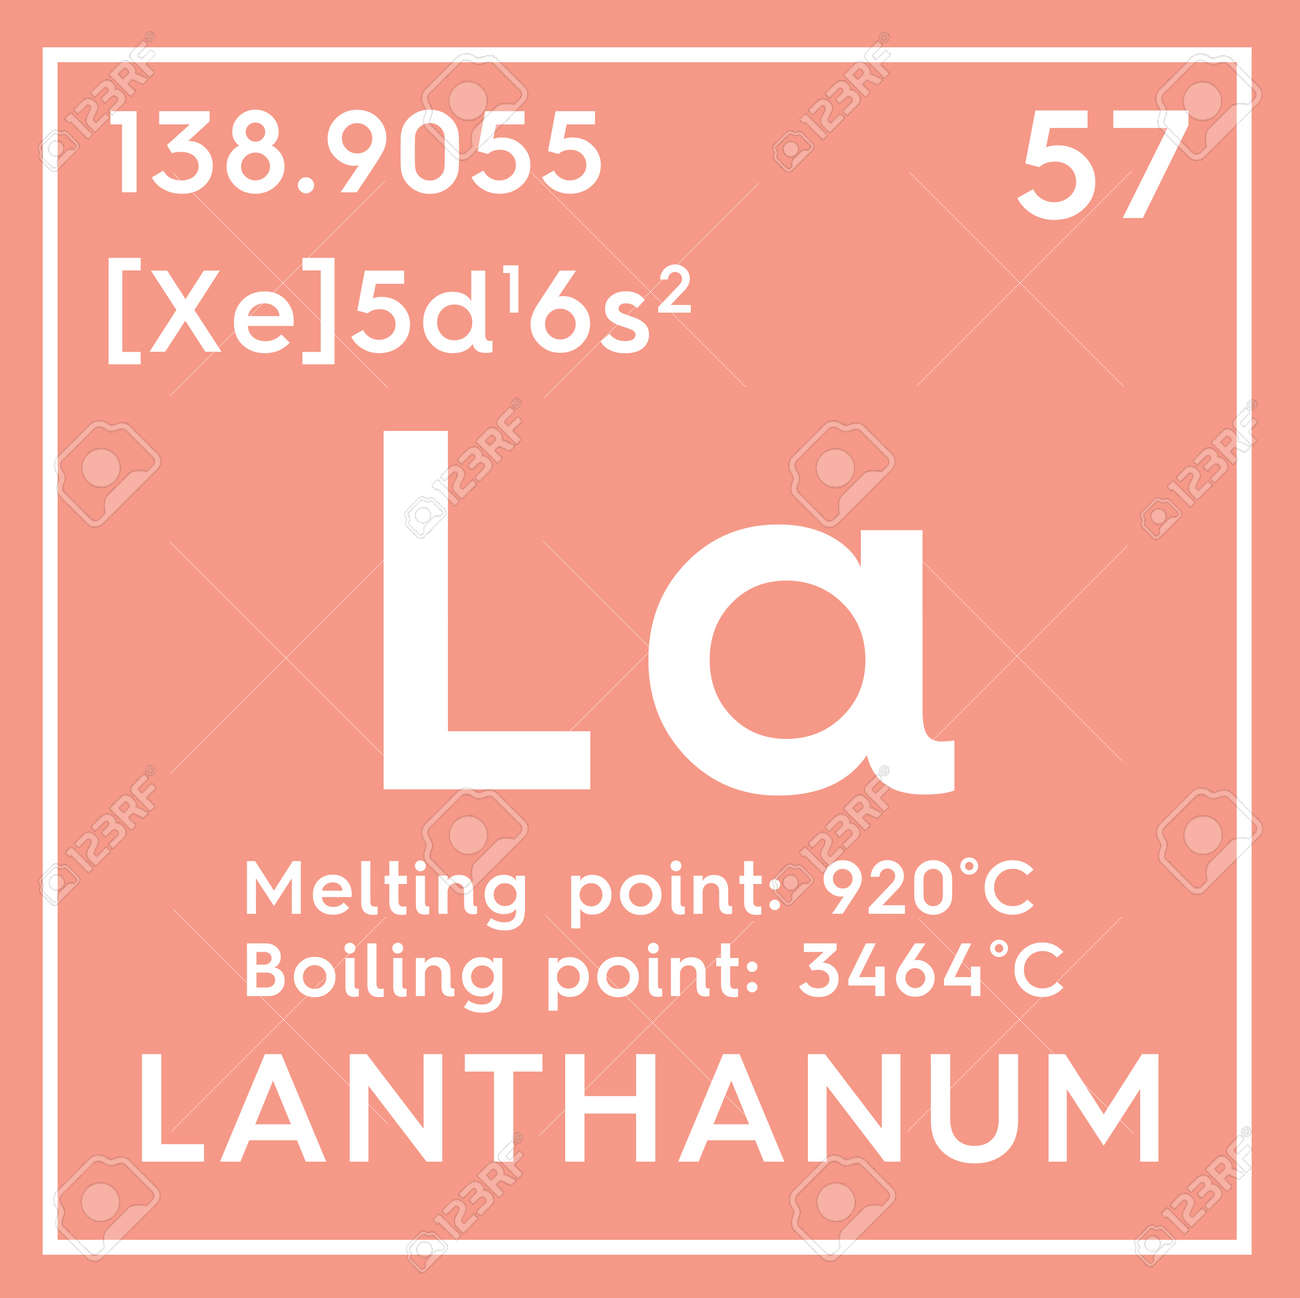 Periodic table of melting points gallery periodic table images periodic table melting points images periodic table images periodic table boiling points gallery periodic table images gamestrikefo Gallery